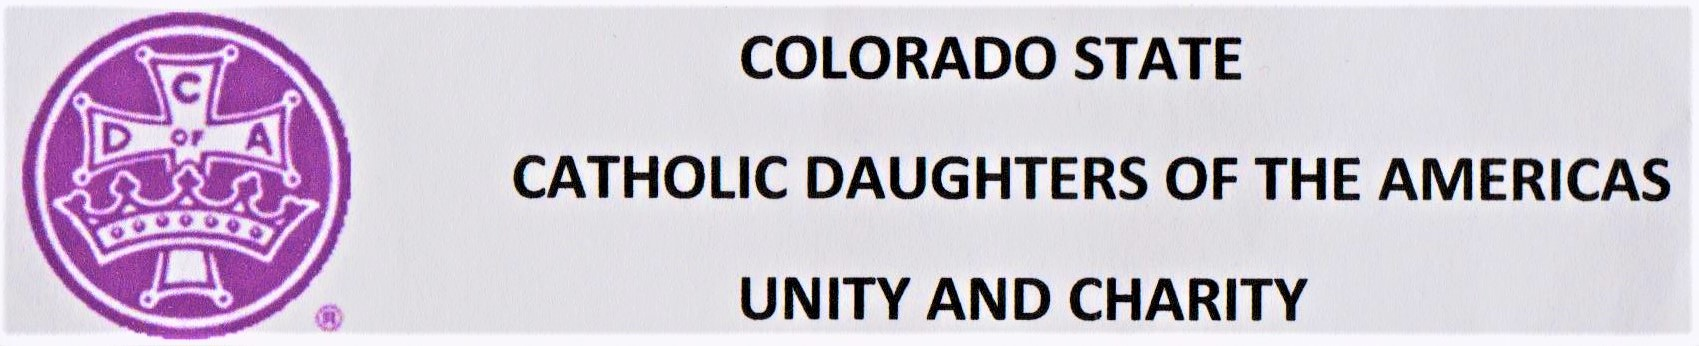 Colorado Catholic Daughters of the Americas